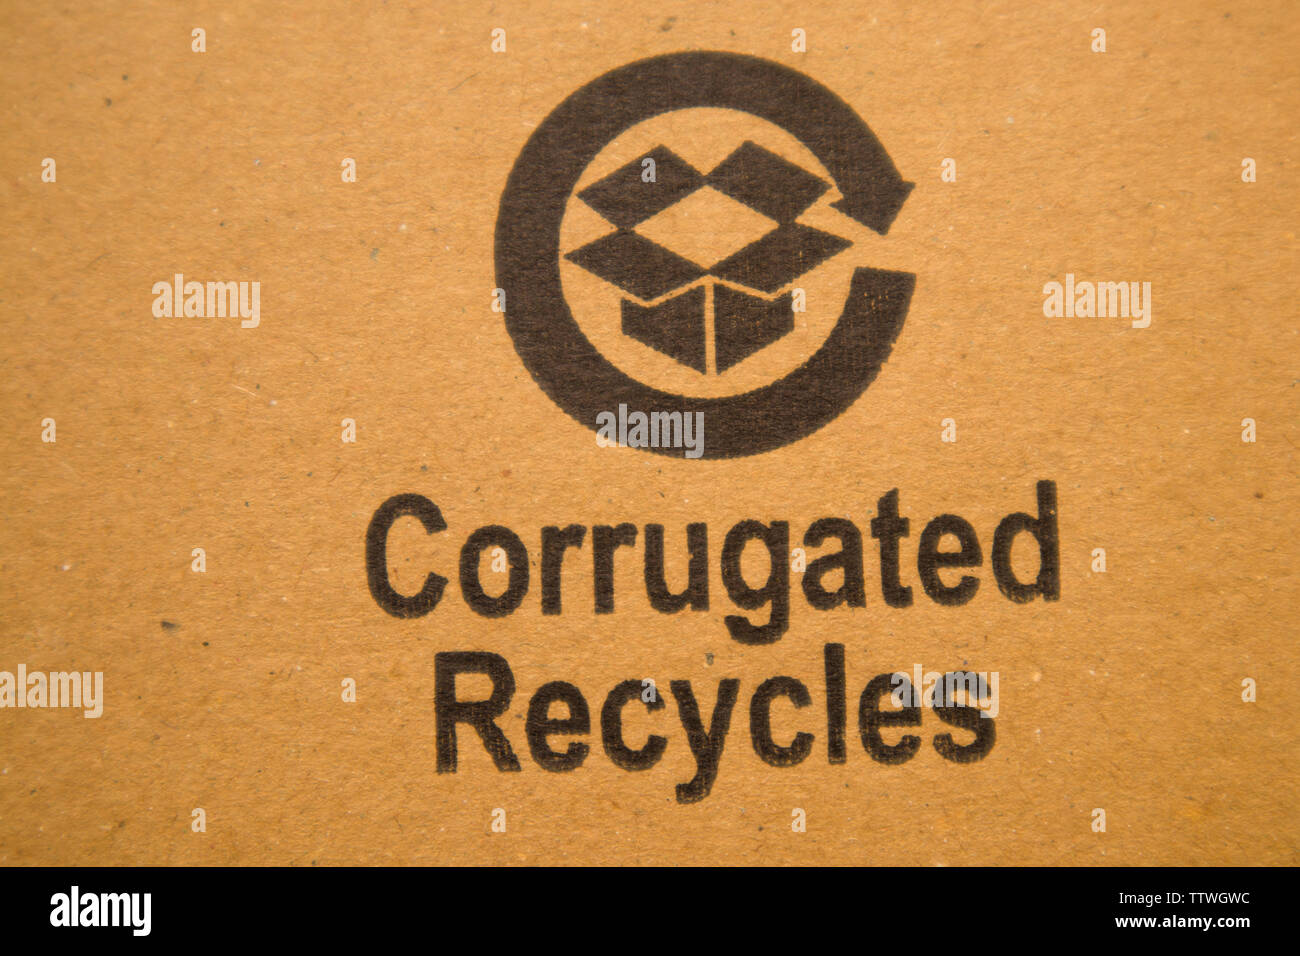 BANGALORE INDIA June 13, 2019 : Corrugated recycles printed on card board. - Stock Image